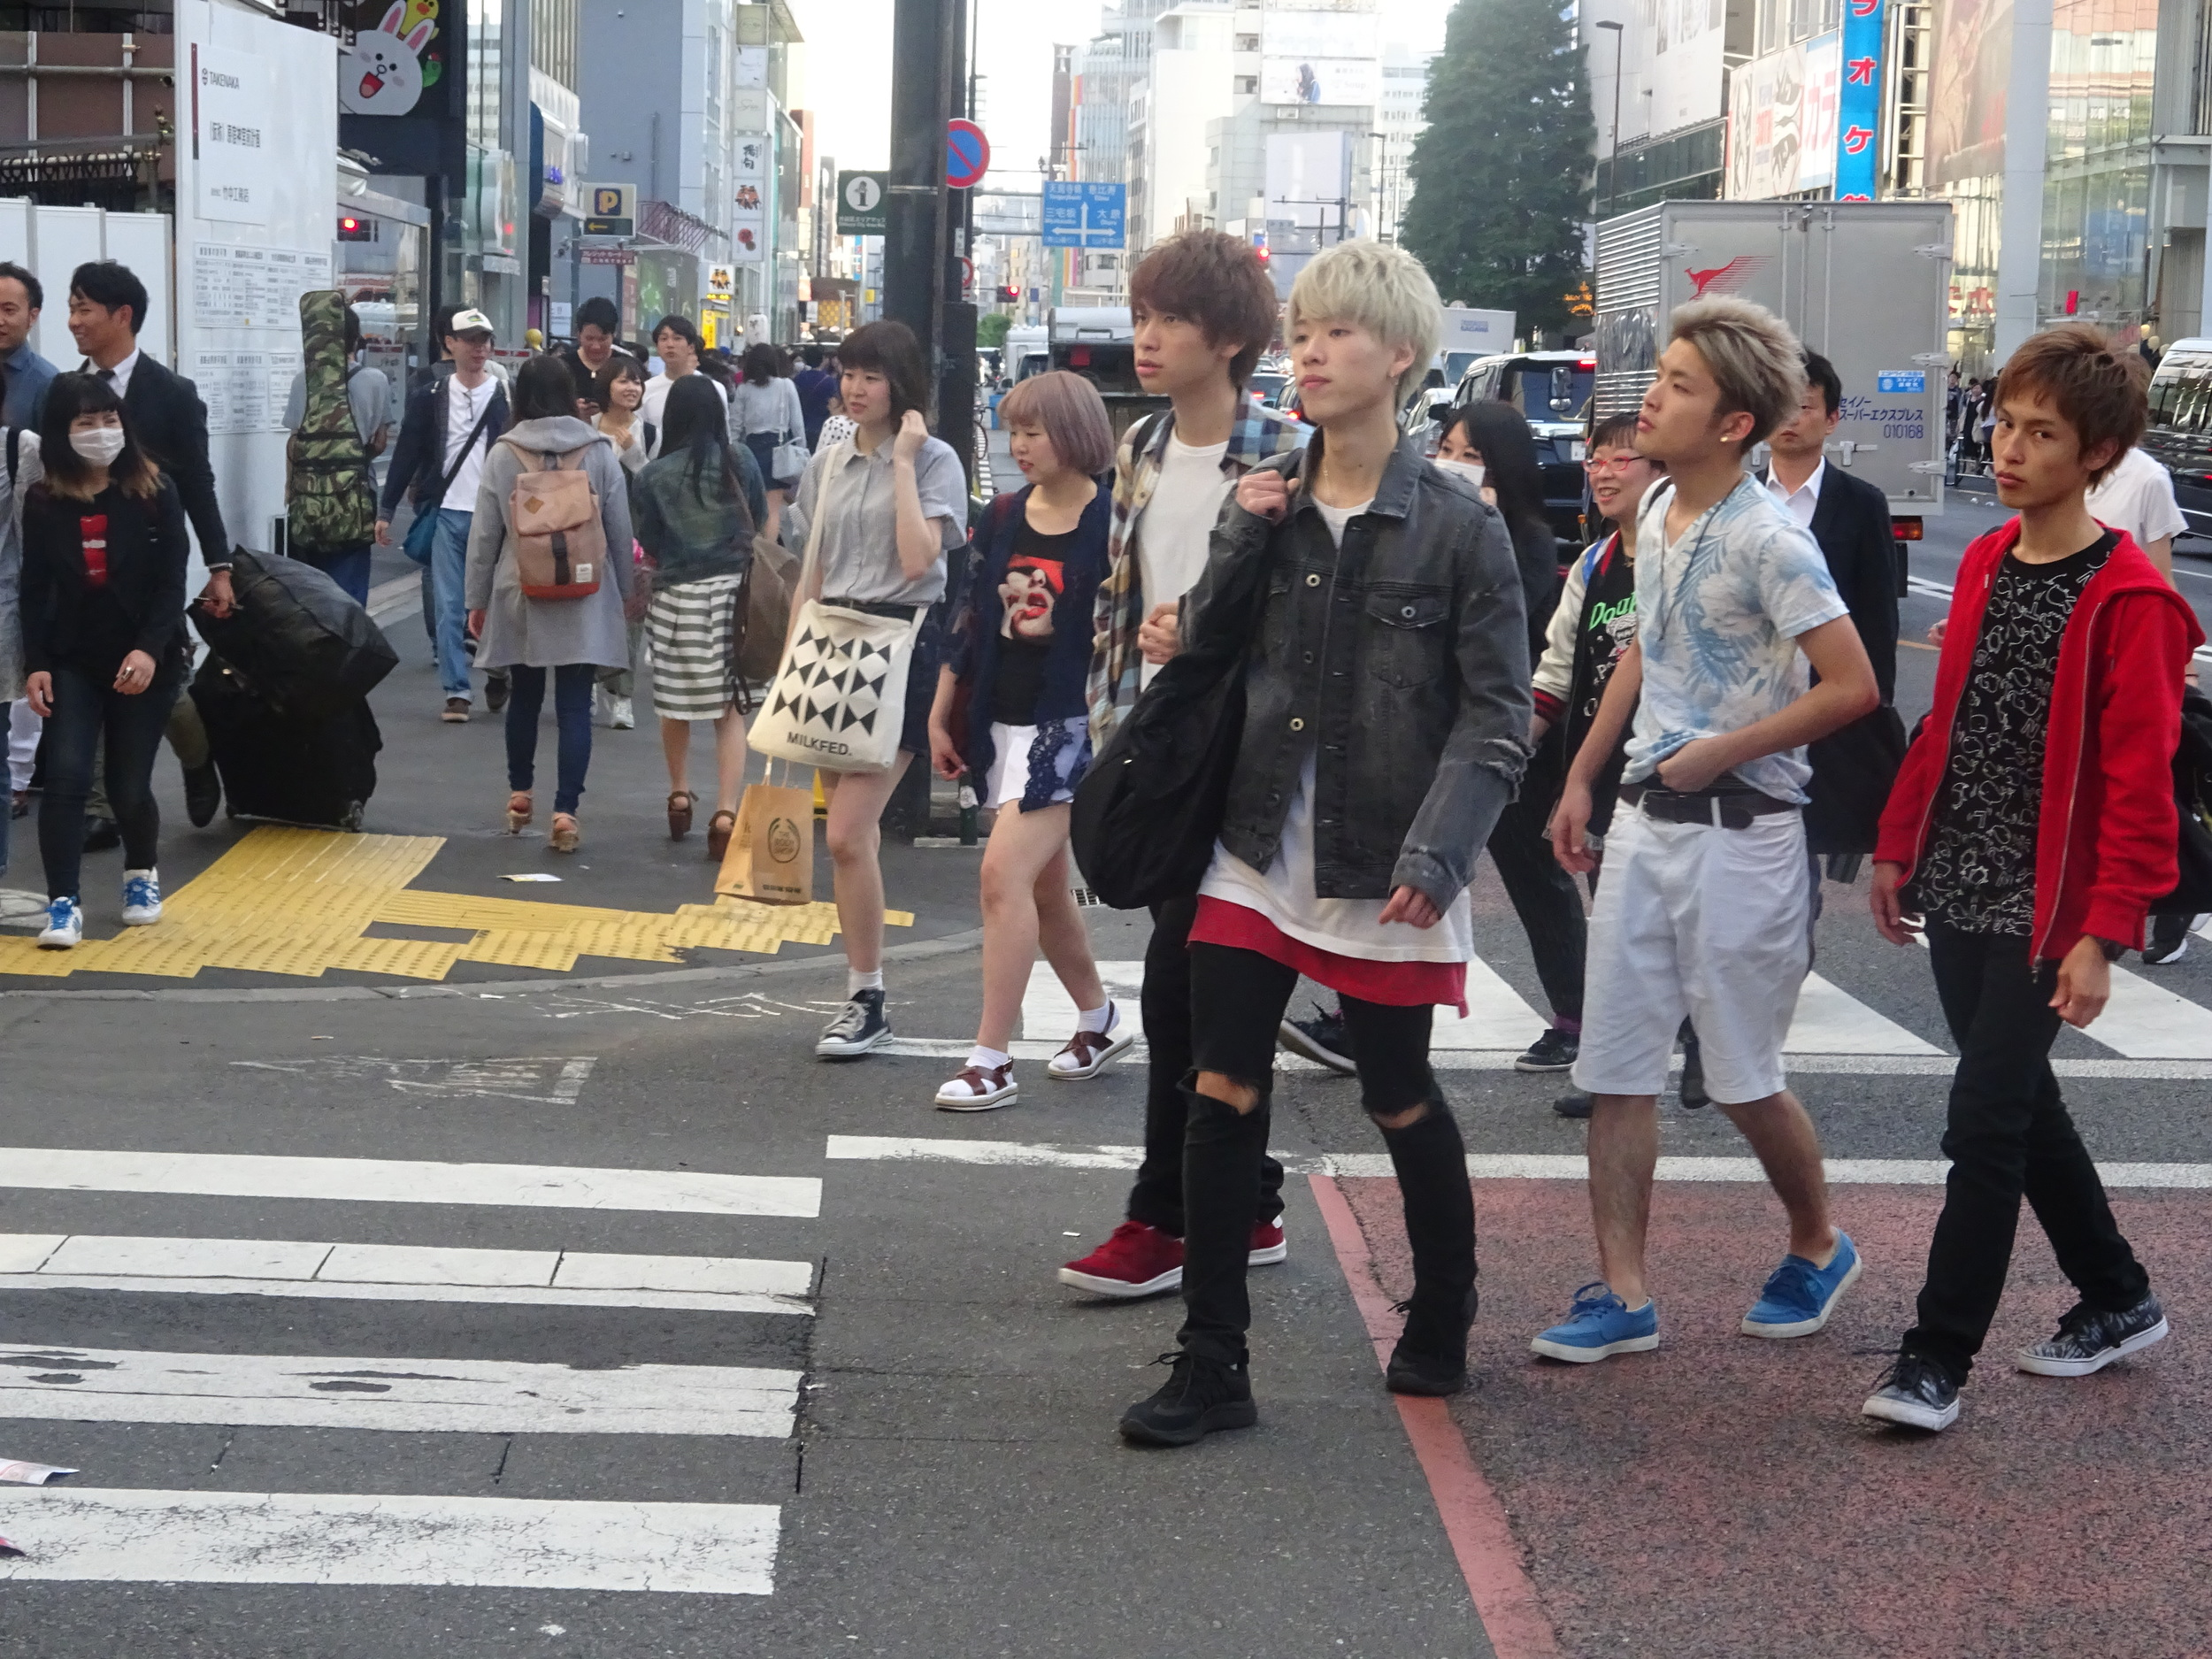 BOYS IN TOKYO.    I WAS HONESTLY SURPRISED BY HOW MANY BOYS COLOR THEIR HAIR IN JAPAN.